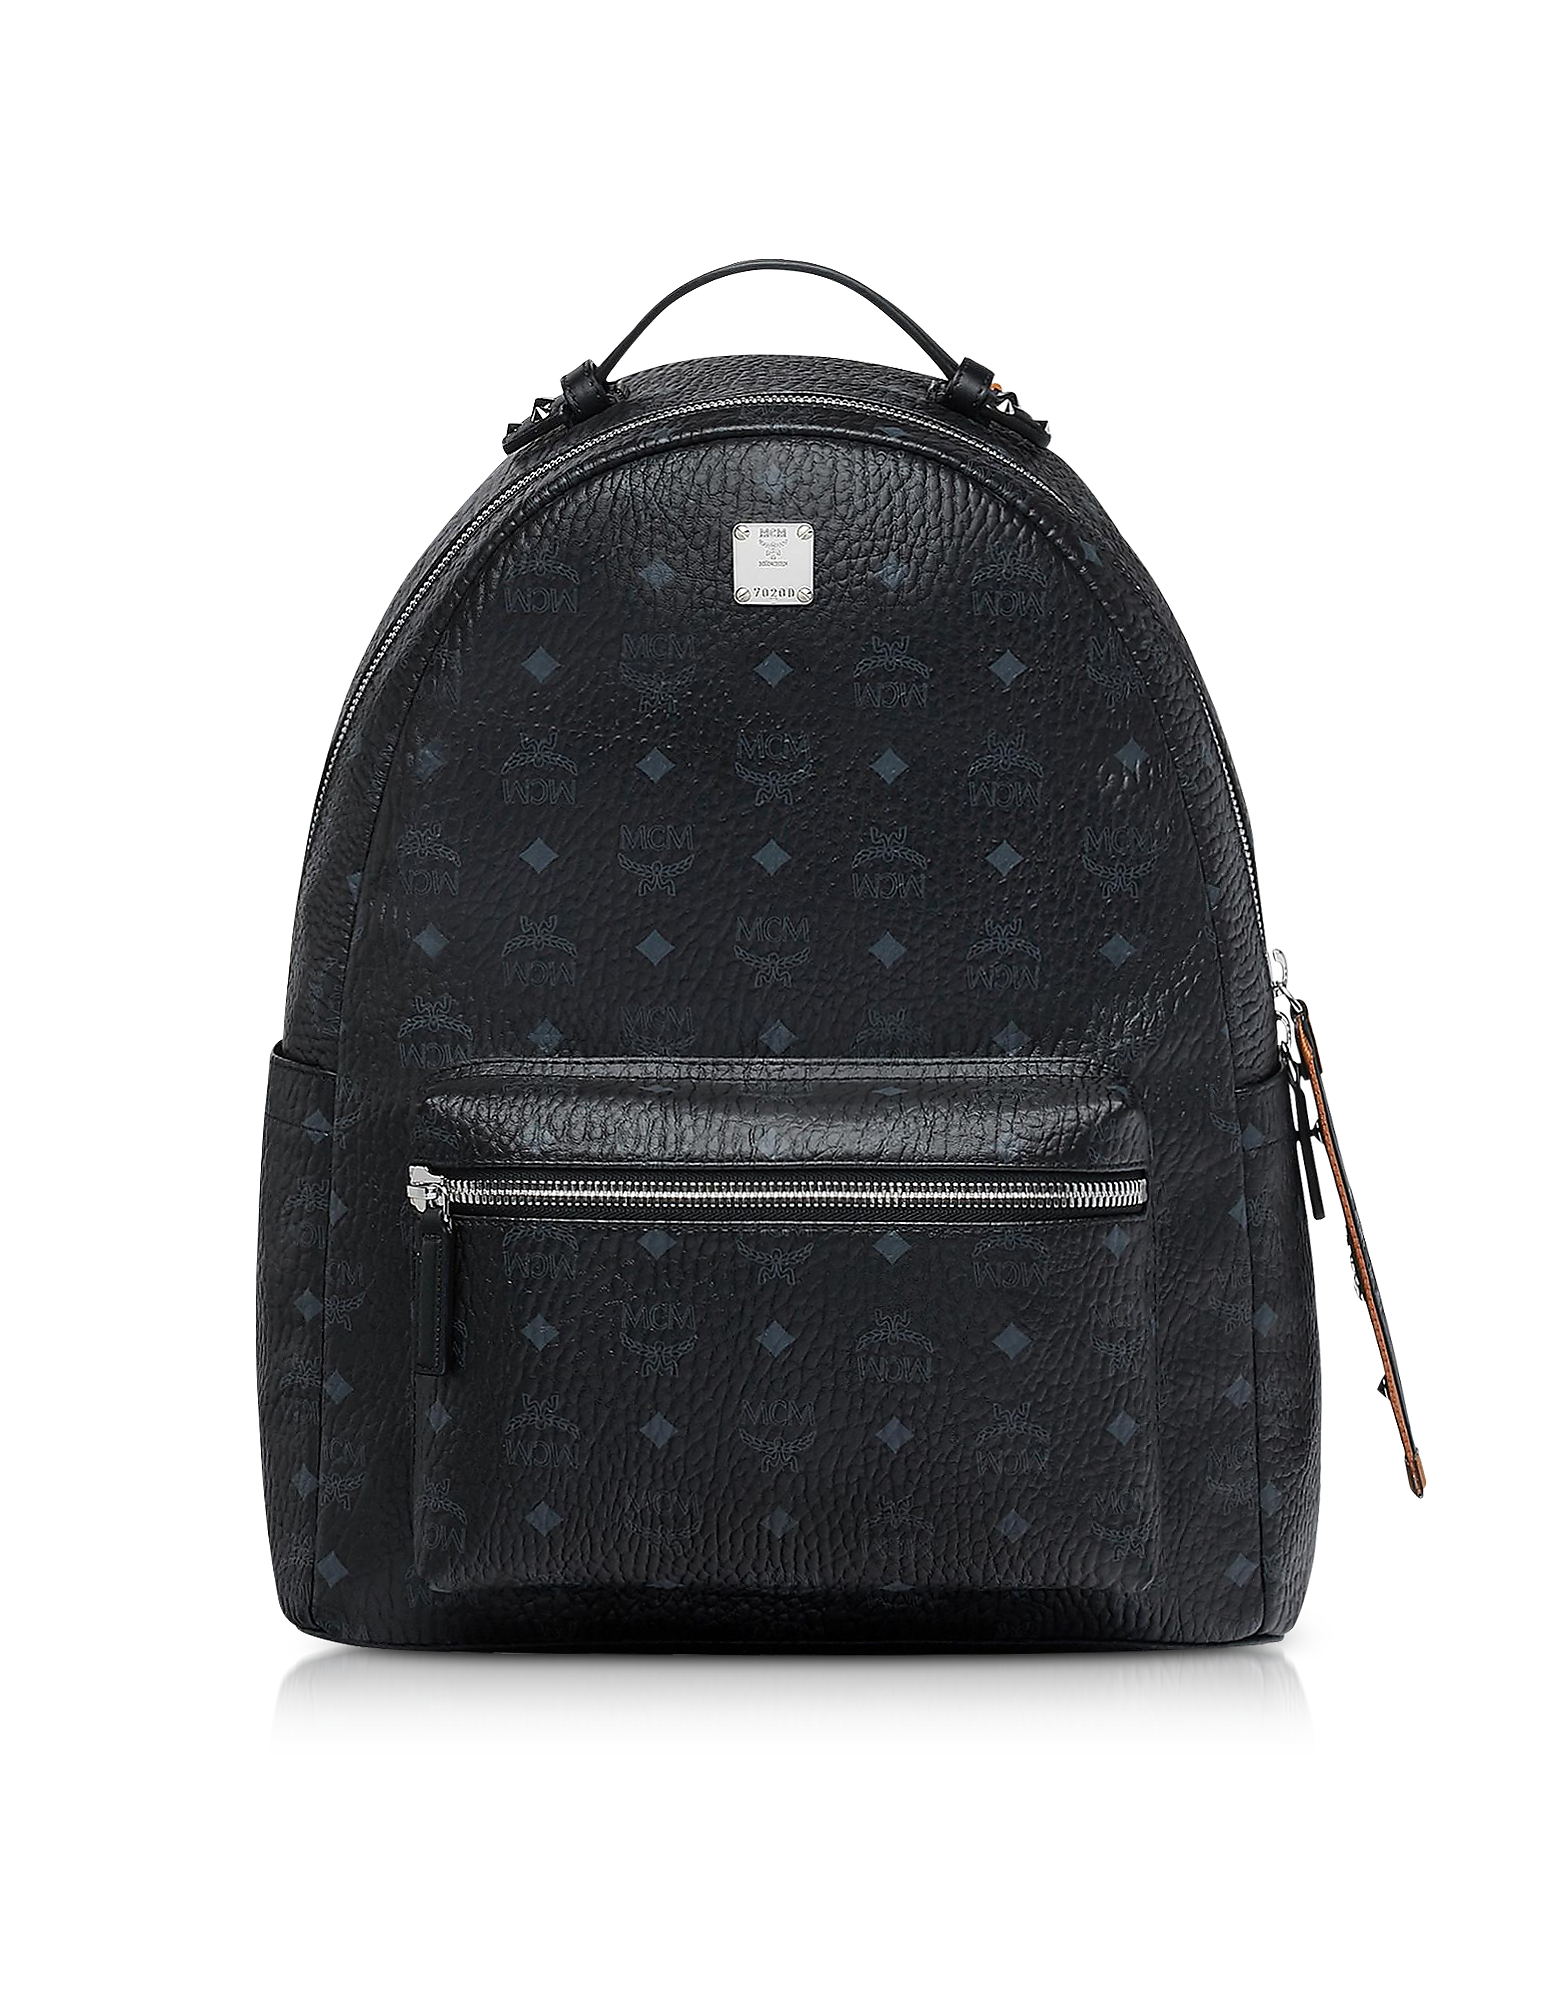 Black/Cognac Visetos Stark Backpack